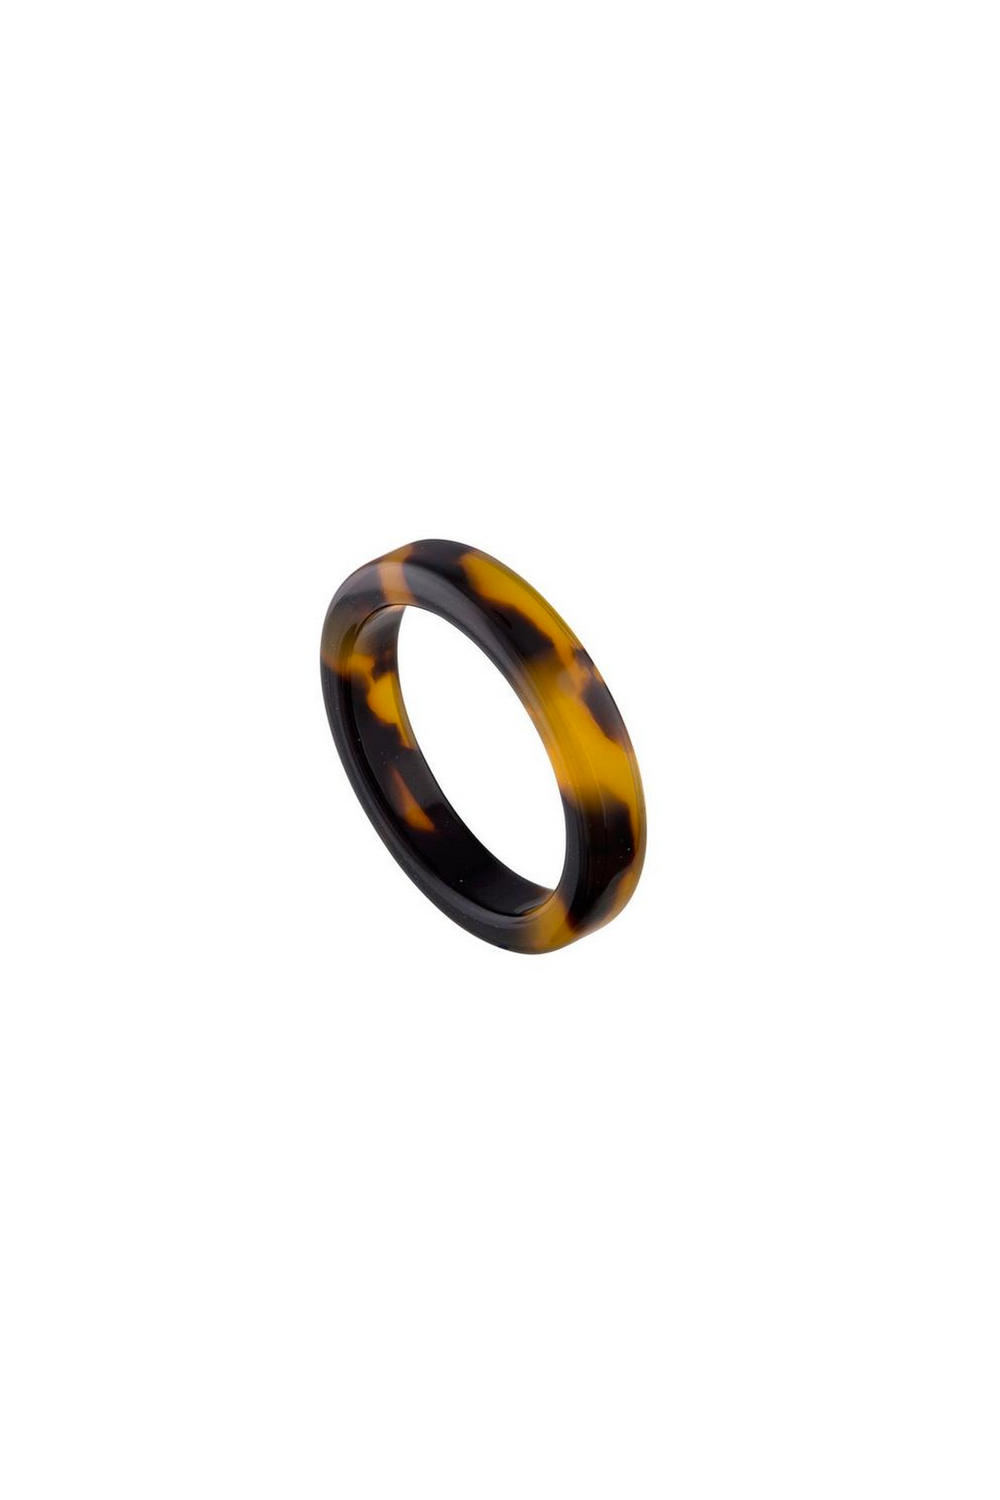 Machete Thin Stack Ring in Classic Tortoise